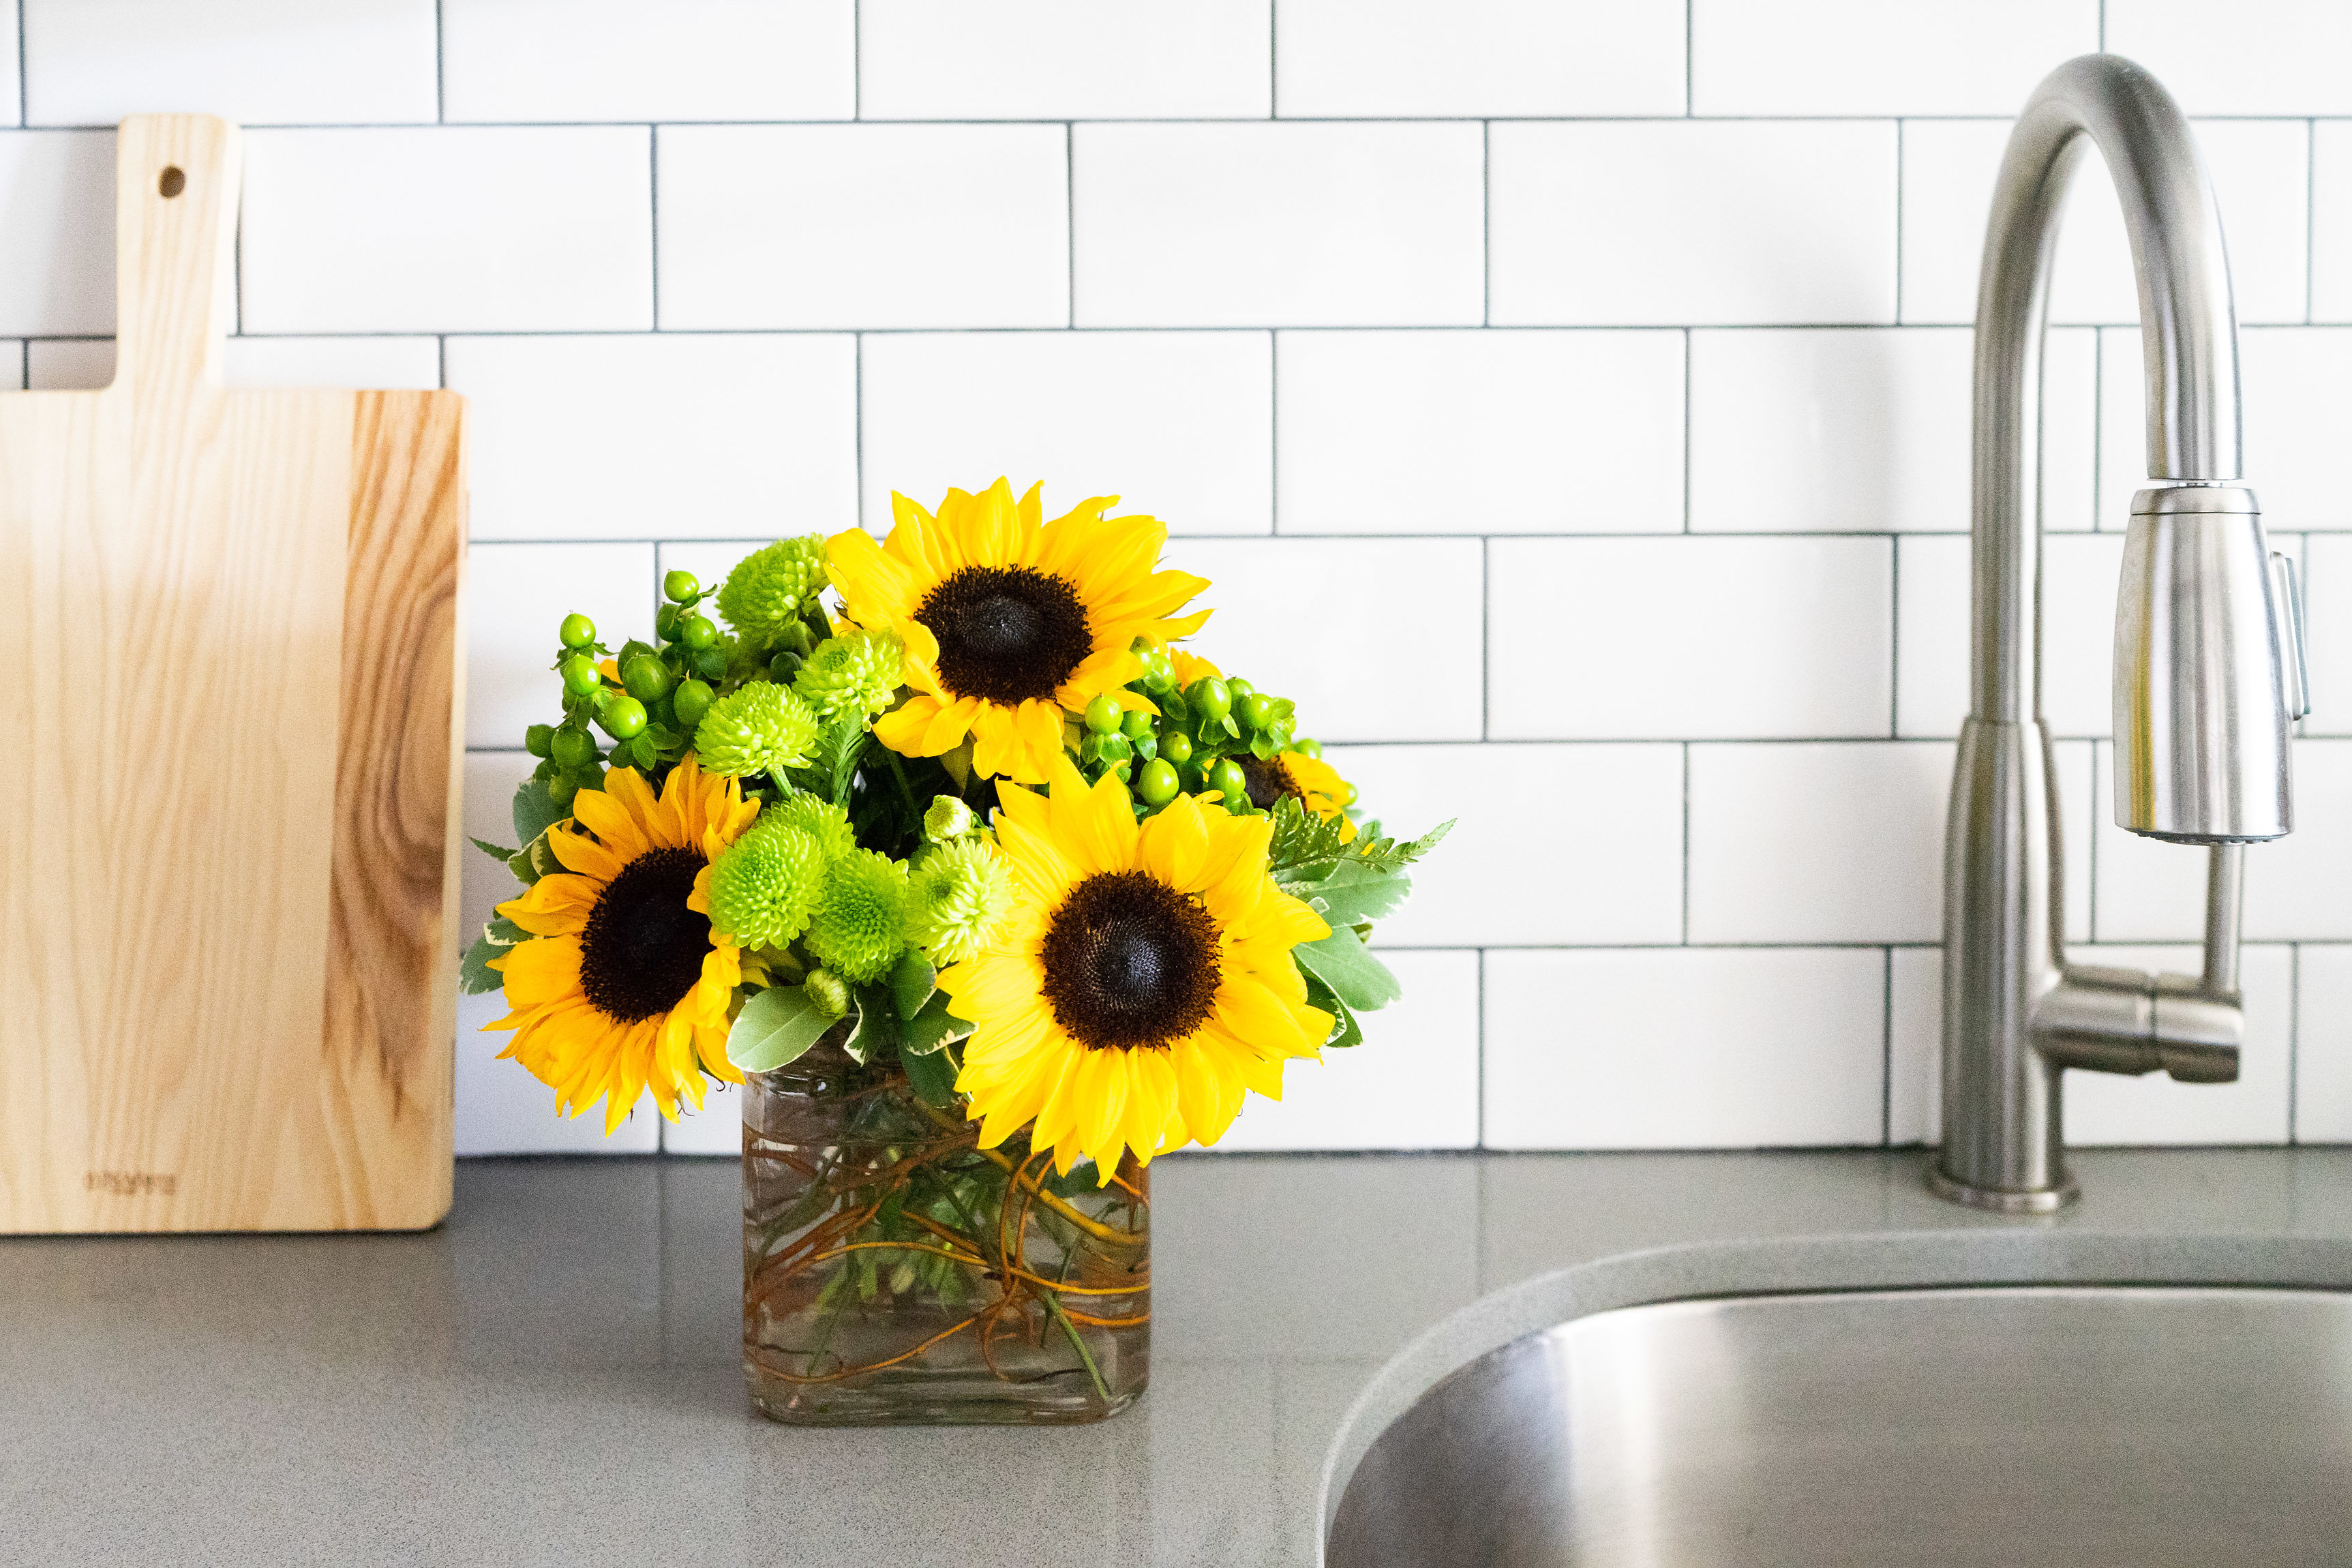 What Do Sunflowers Symbolize?